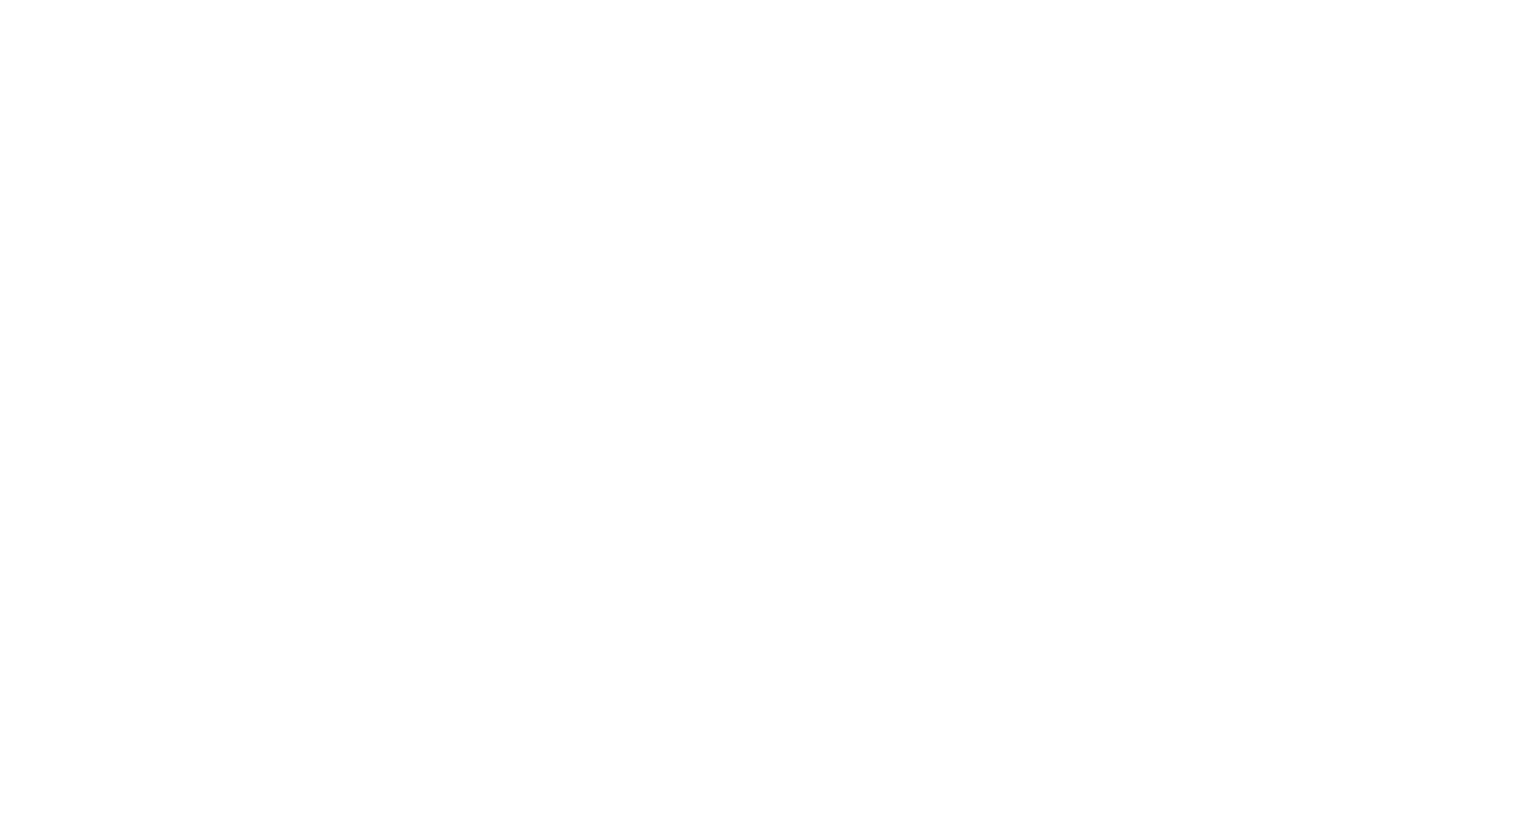 Close Encounters of the Third Kind and Brainstorm